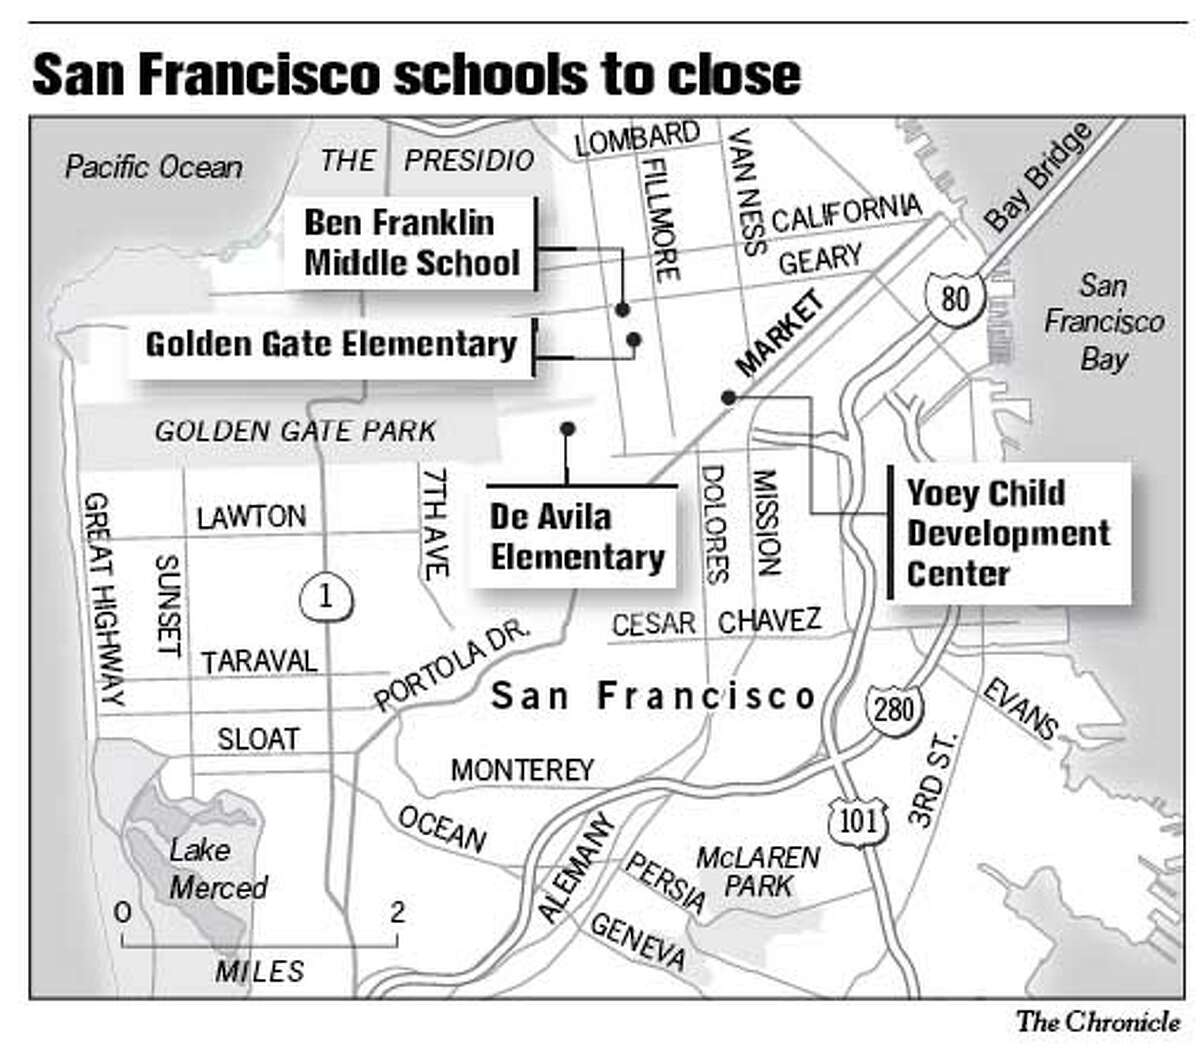 San Francisco Schools to Close. Chronicle Graphic